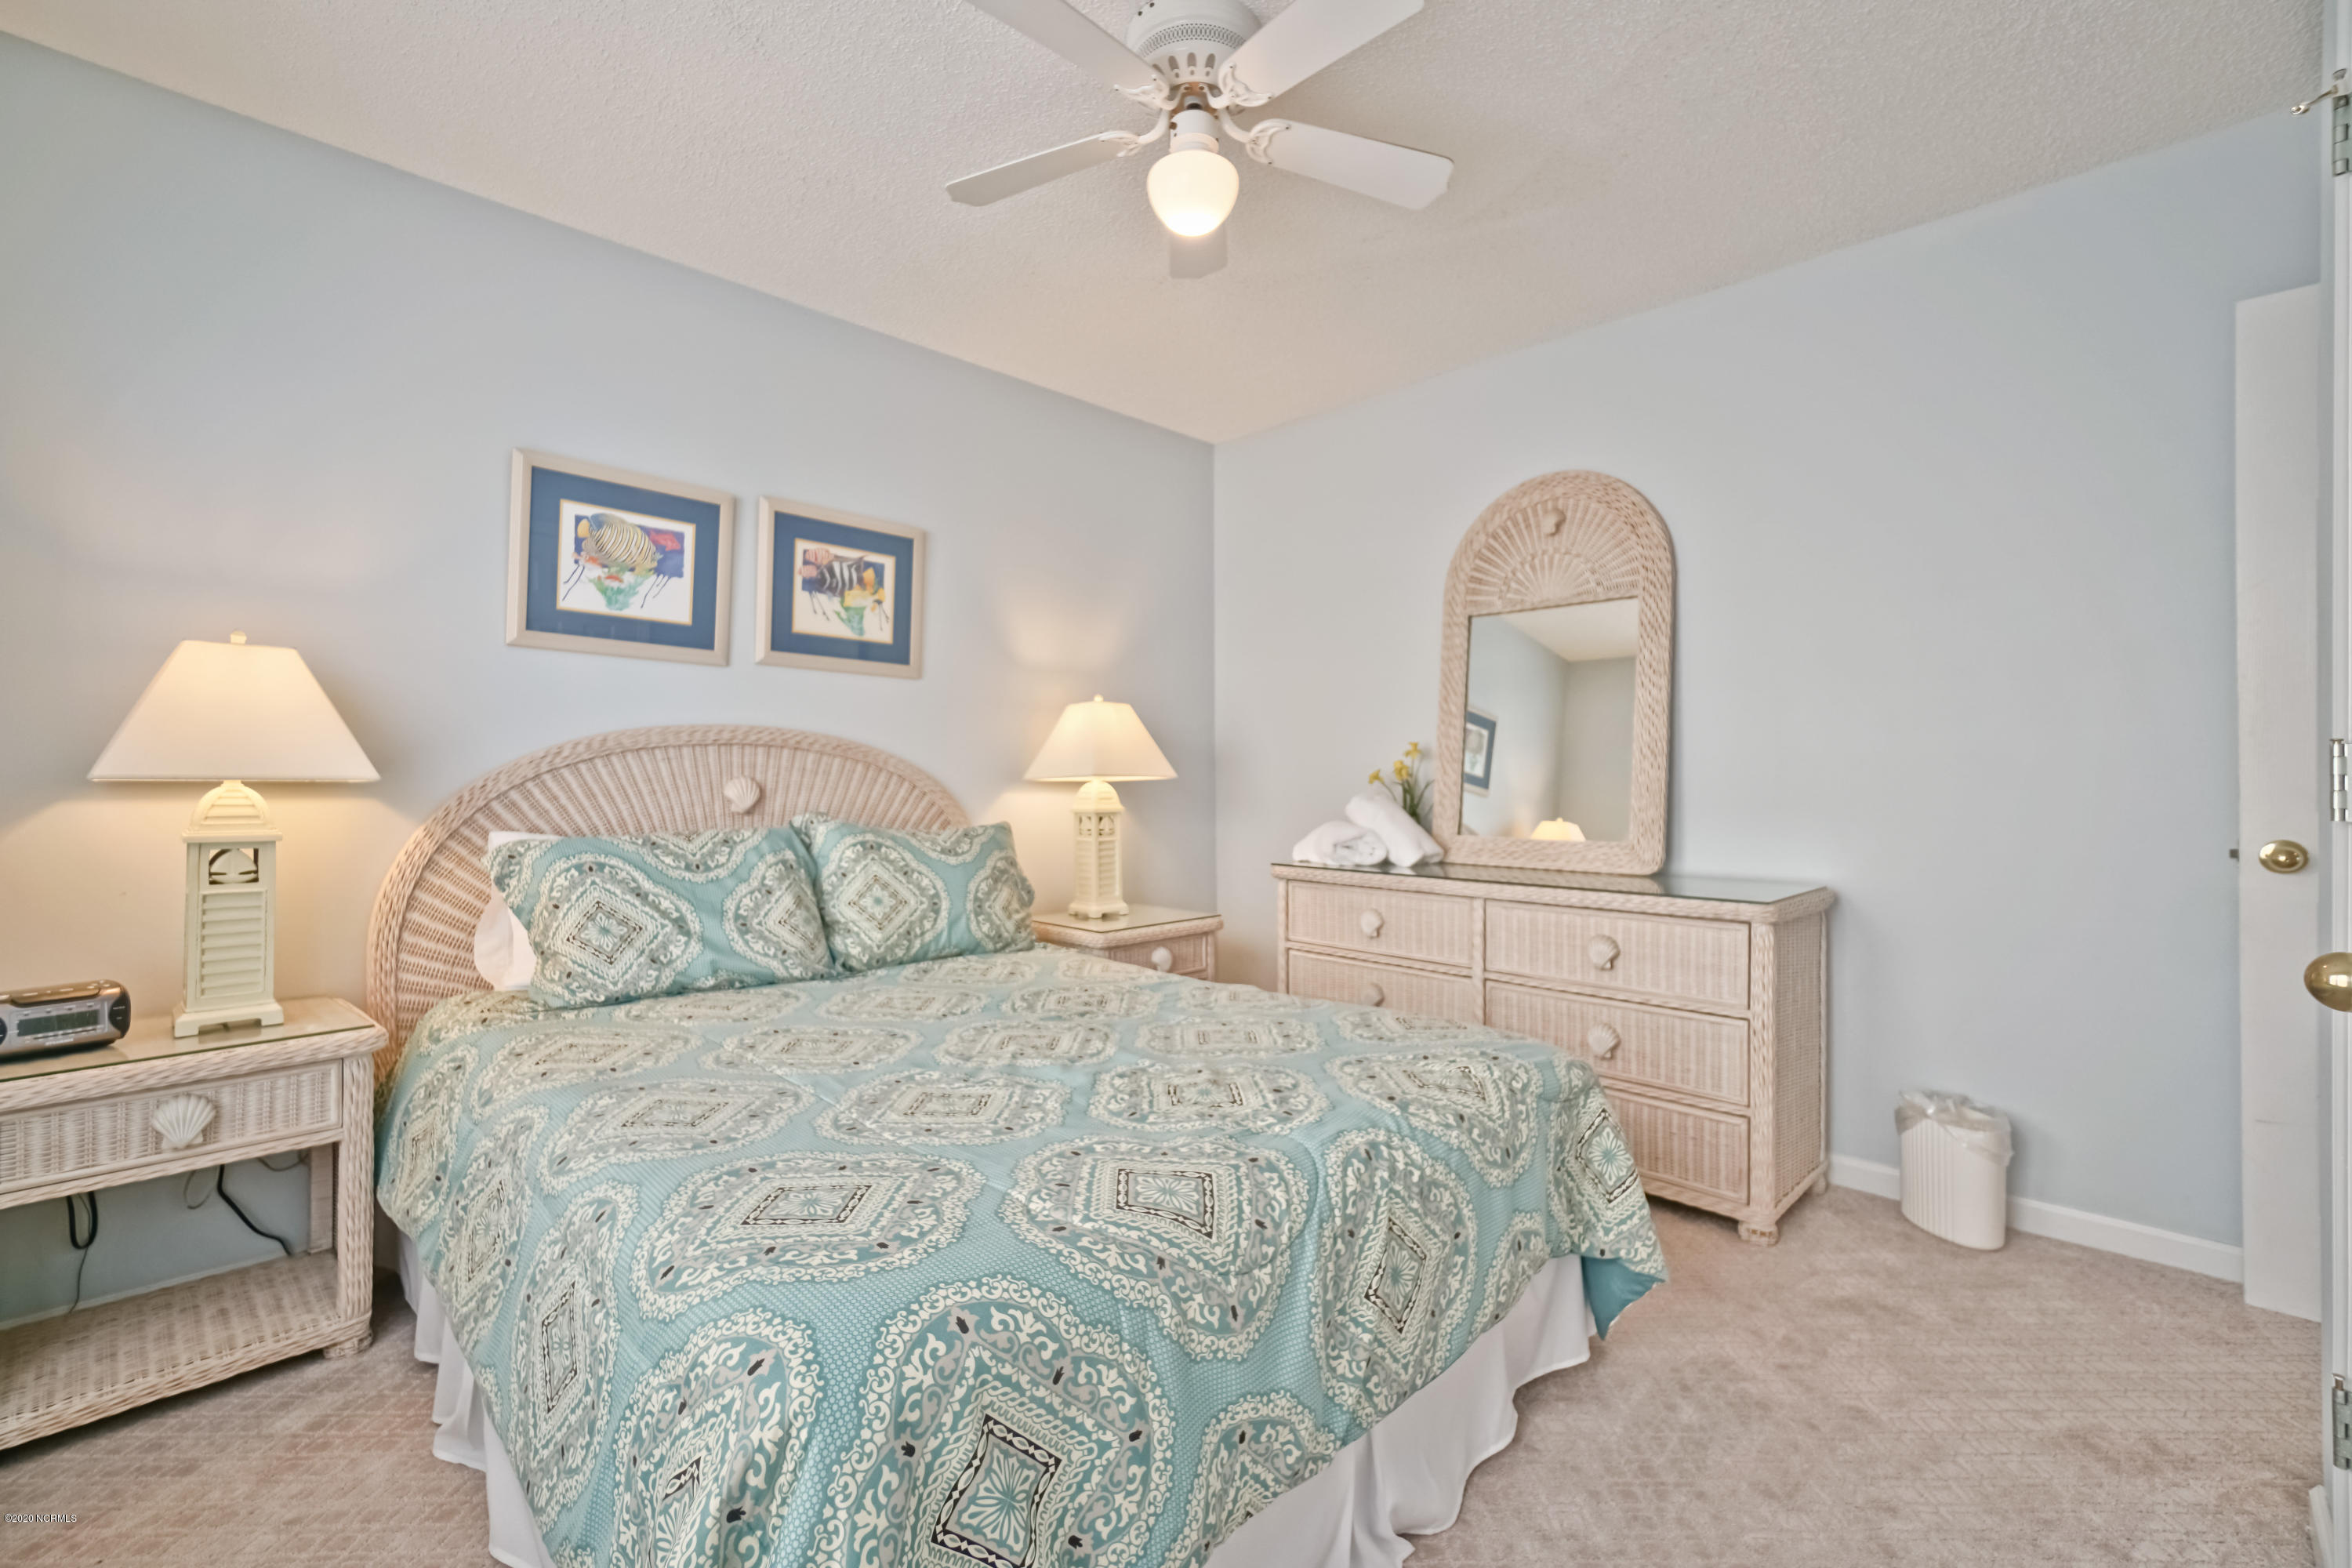 271 First Street, Ocean Isle Beach, North Carolina 28469, 7 Bedrooms Bedrooms, 11 Rooms Rooms,7 BathroomsBathrooms,Condominium,For sale,First,100218921